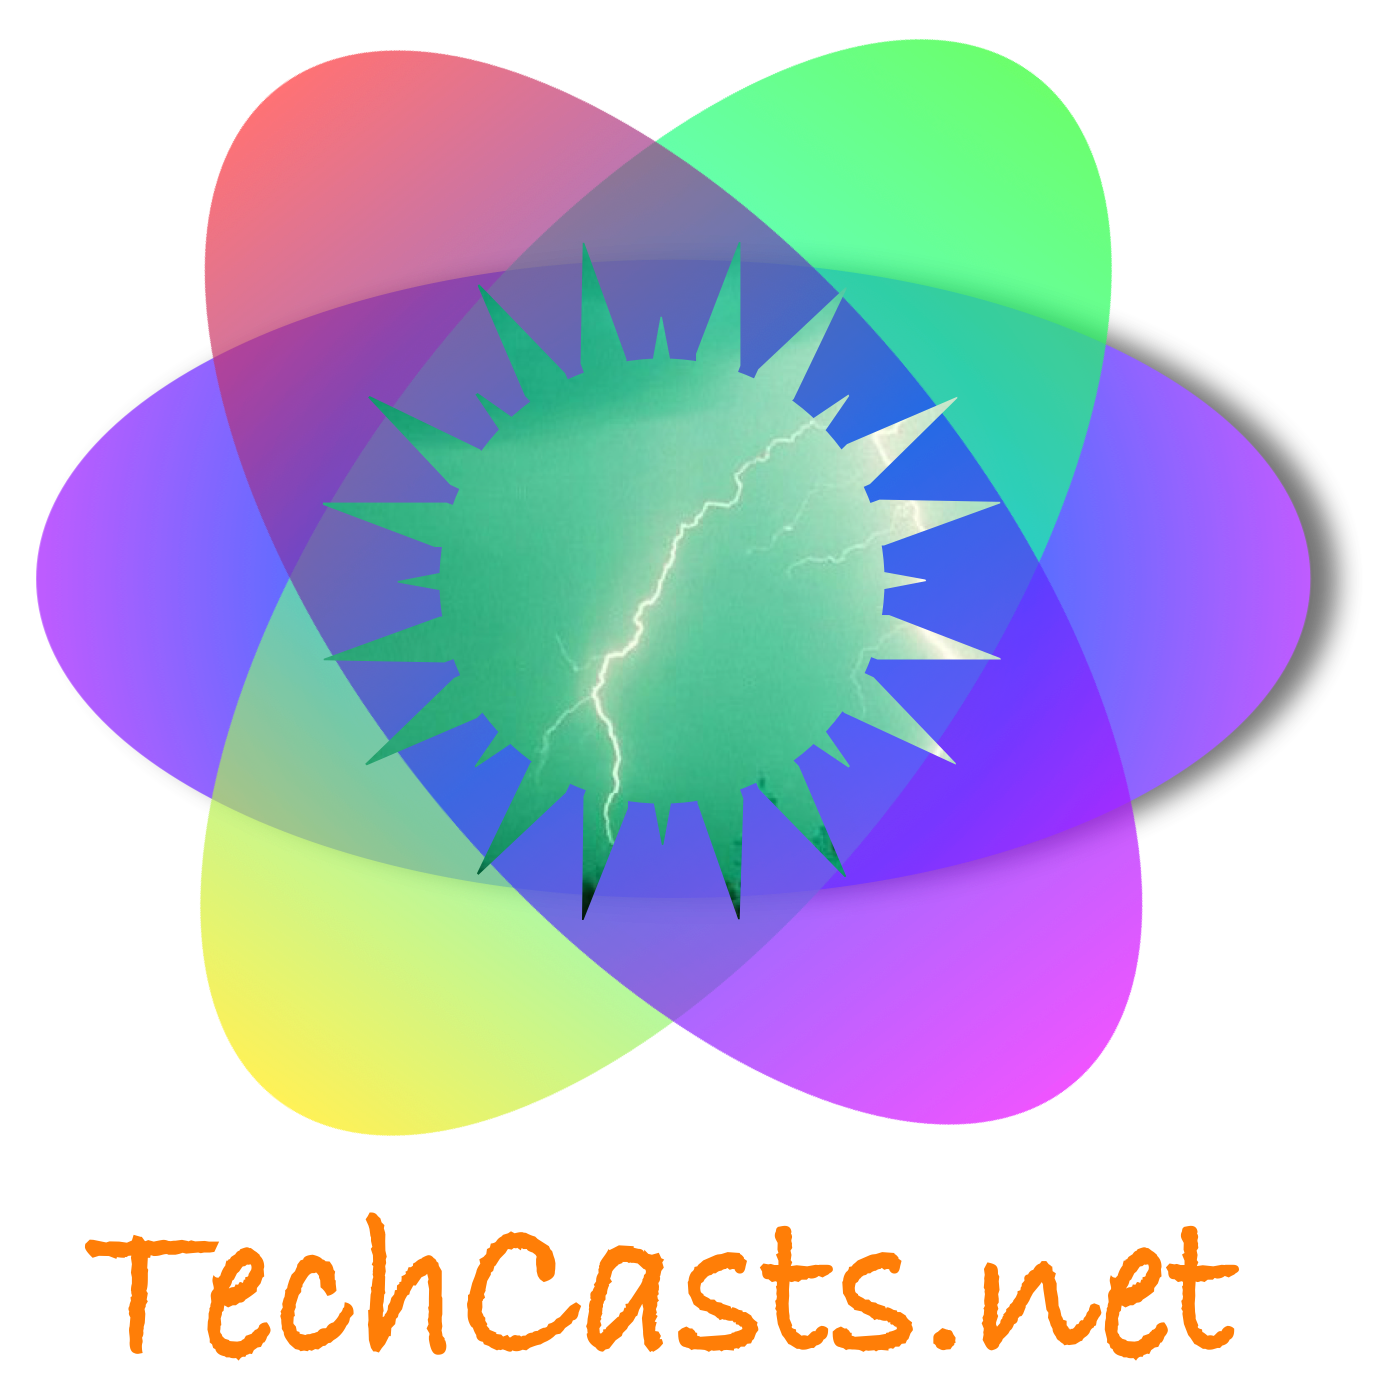 Techcasts.net